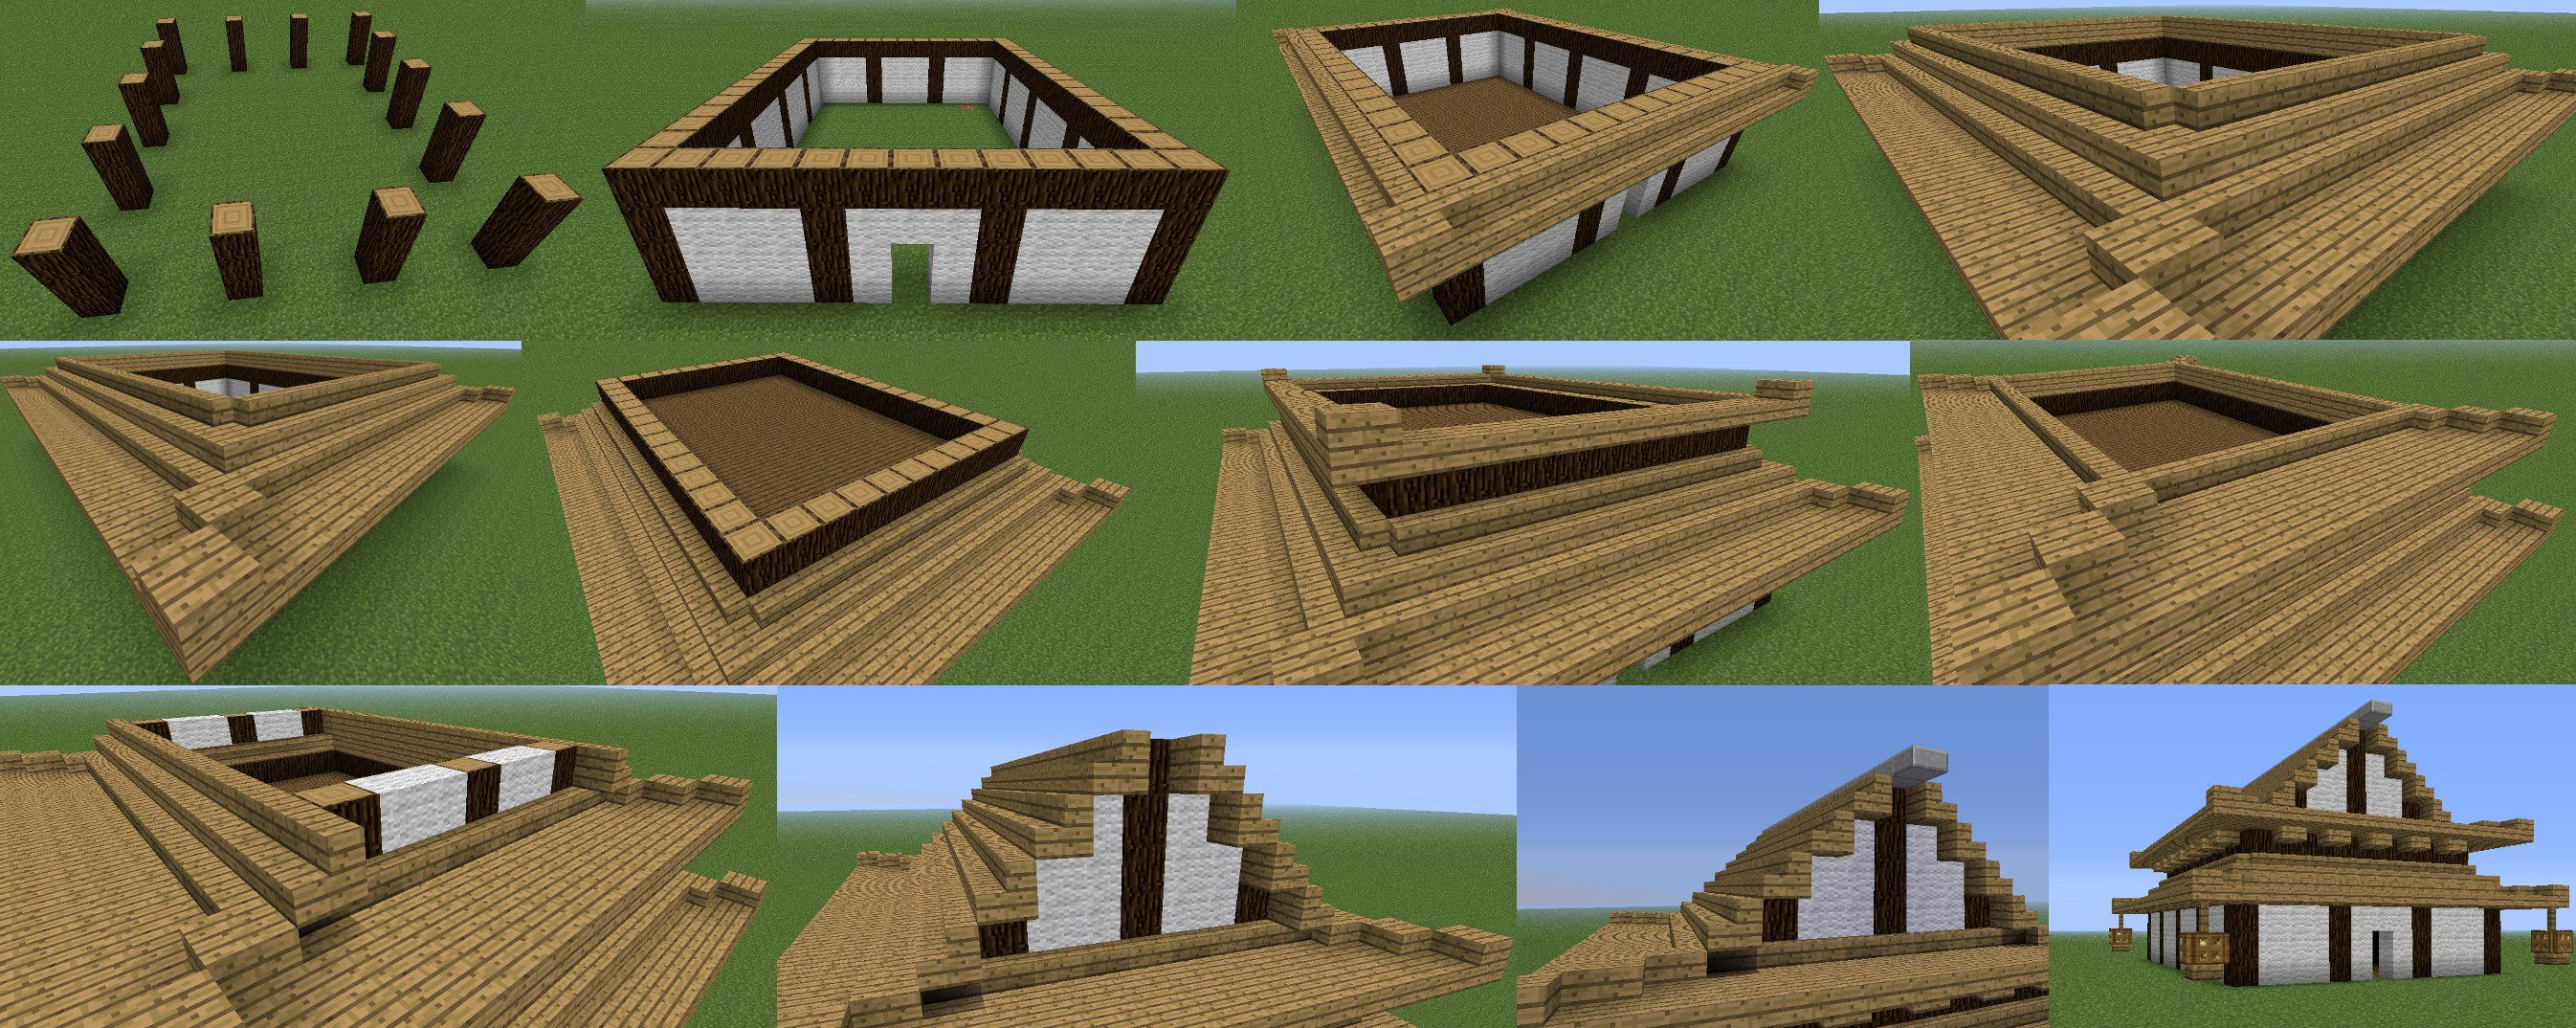 Japanese Building Style in Minecraft - Minecraft Guides ...